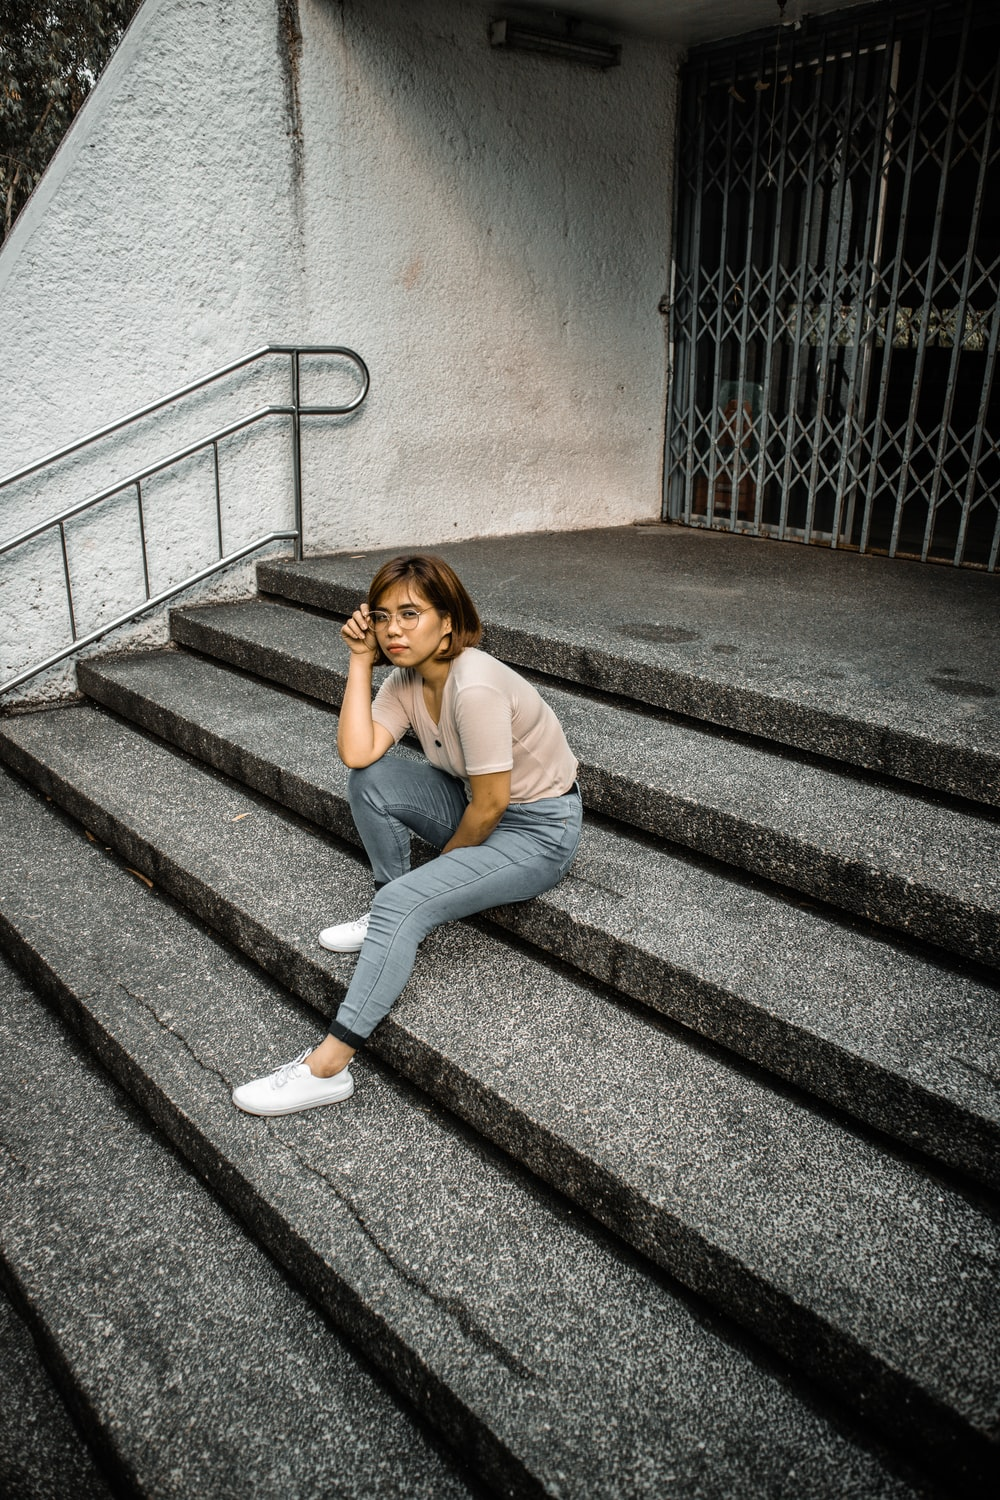 woman sitting on concrete stair